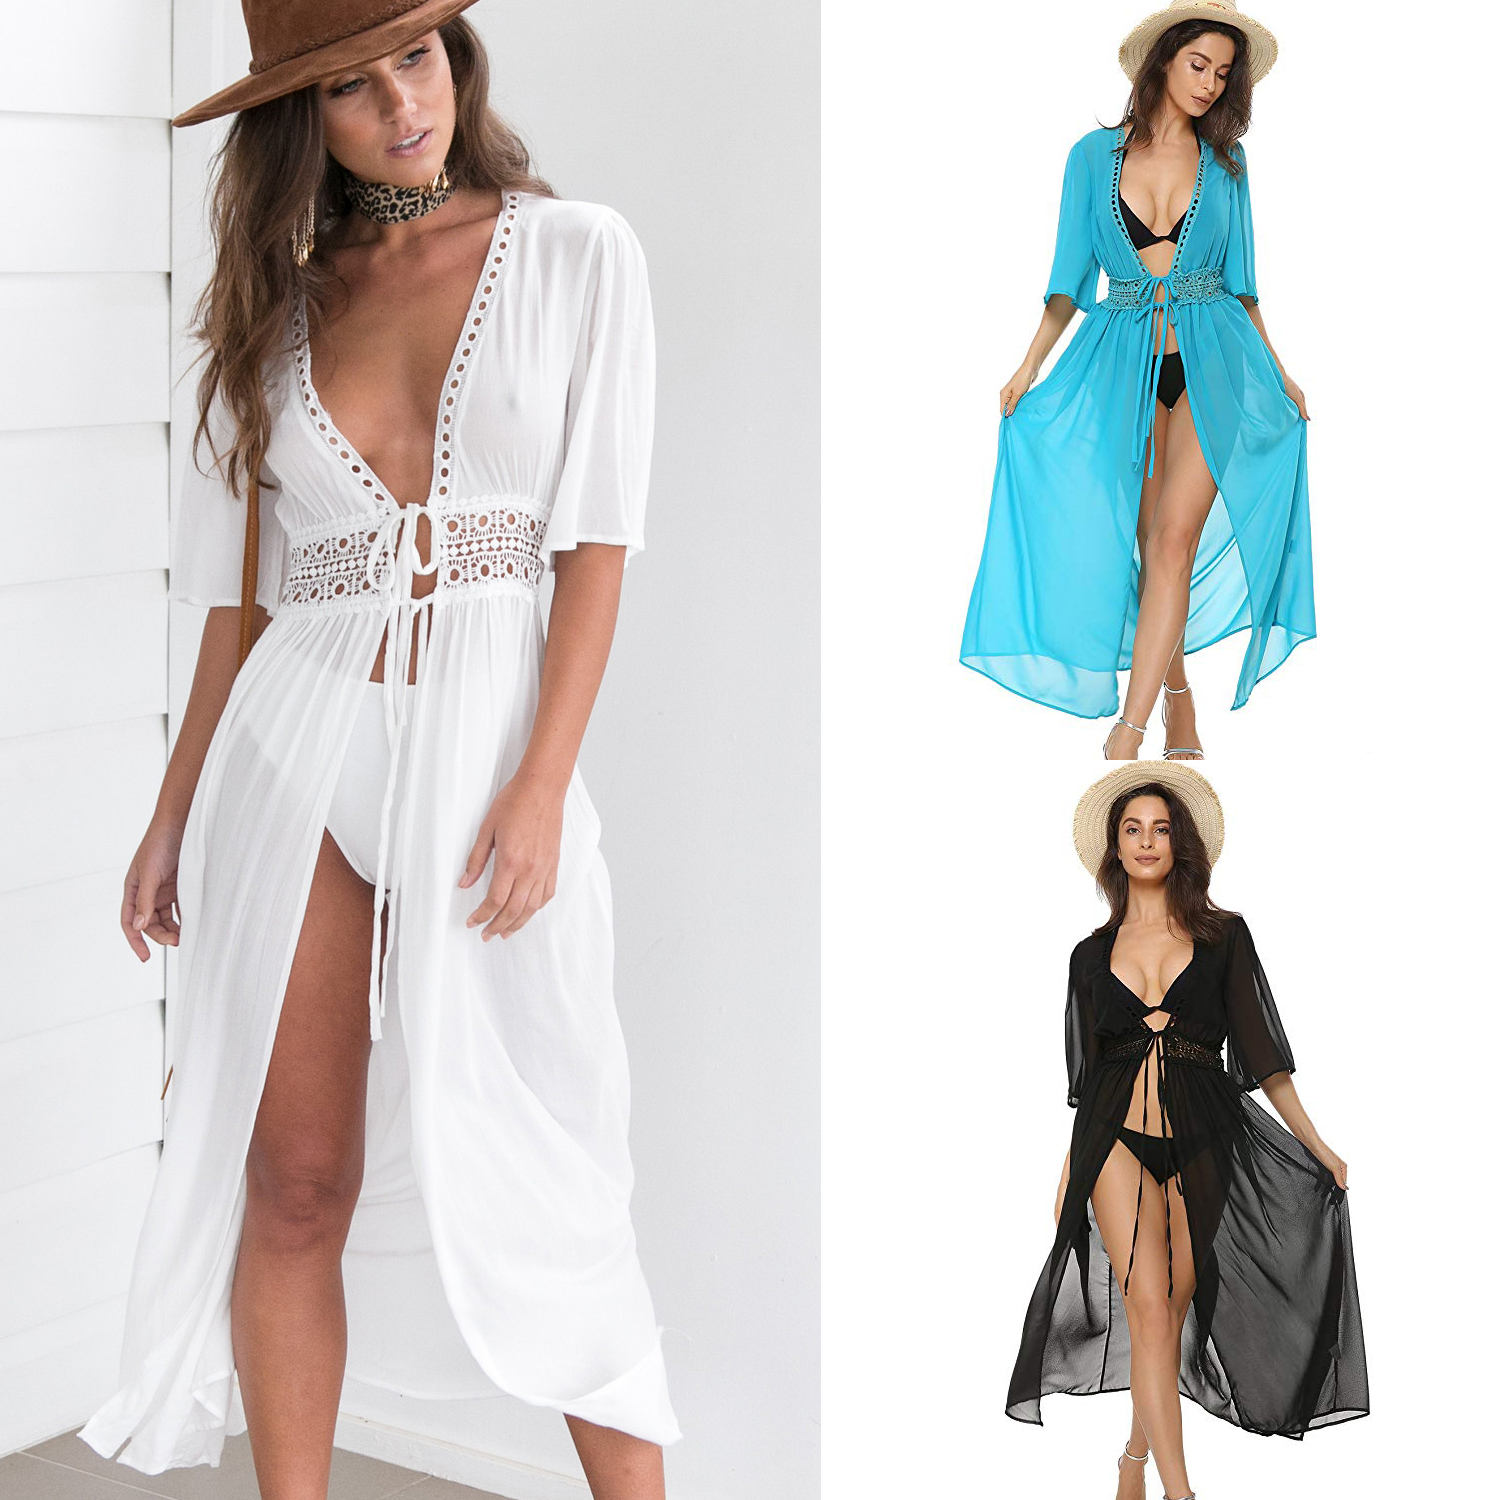 3 Color Sexy Bikini Cover Up Women Beach Dress 2019 Swimwear Chiffon Plus Size Bathing Suit Maxi Dress Bandage Kimono Cardigan handbag